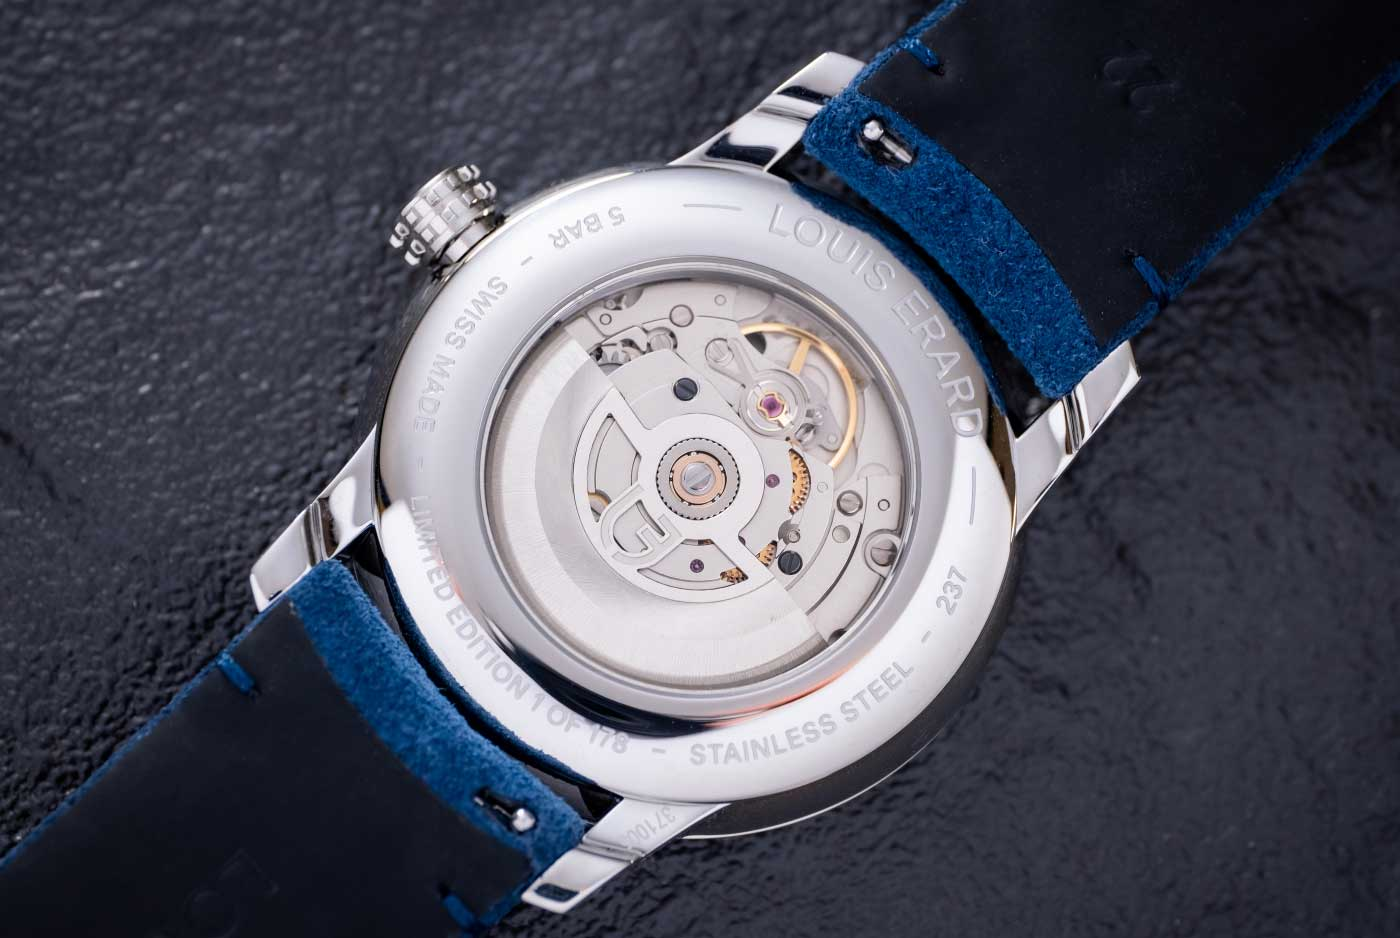 louis-erard-x-vianney-halter-regulateur-back-2---europa-star-watch-magazine-2020